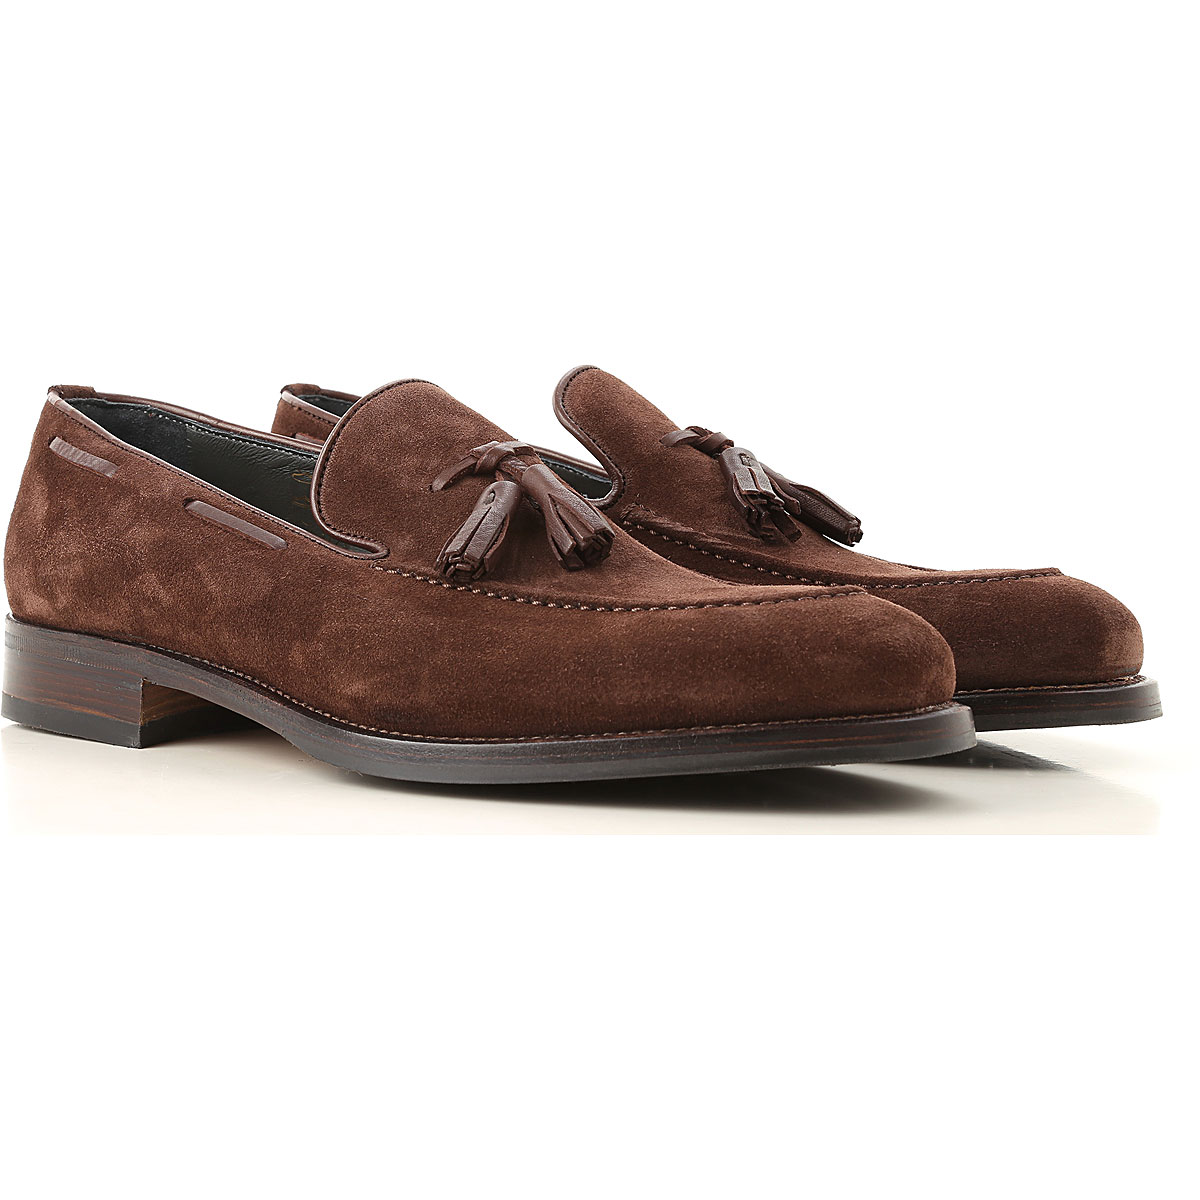 Image of Moreschi Loafers for Men, Brown, suede, 2017, 10 10.5 11 11.5 12 7 7.5 8 8.5 9 9.5